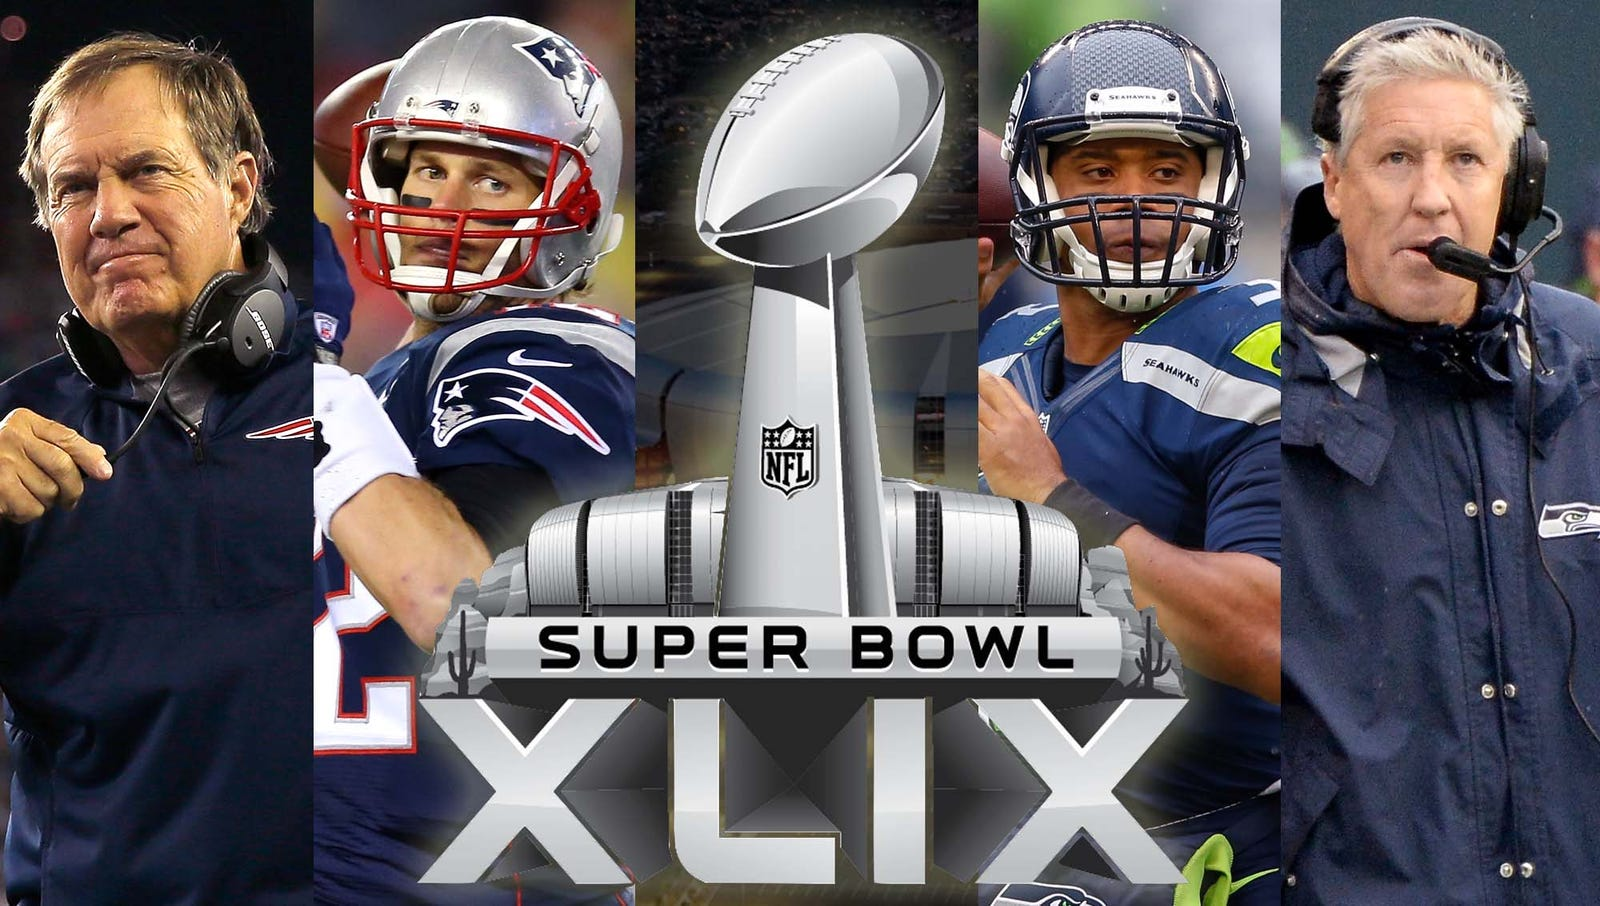 With Super Bowl XLIX set to kick off this Sunday in Arizona, Onion Sports previews the highly anticipated game between the Seattle Seahawks and the New England Patriots.